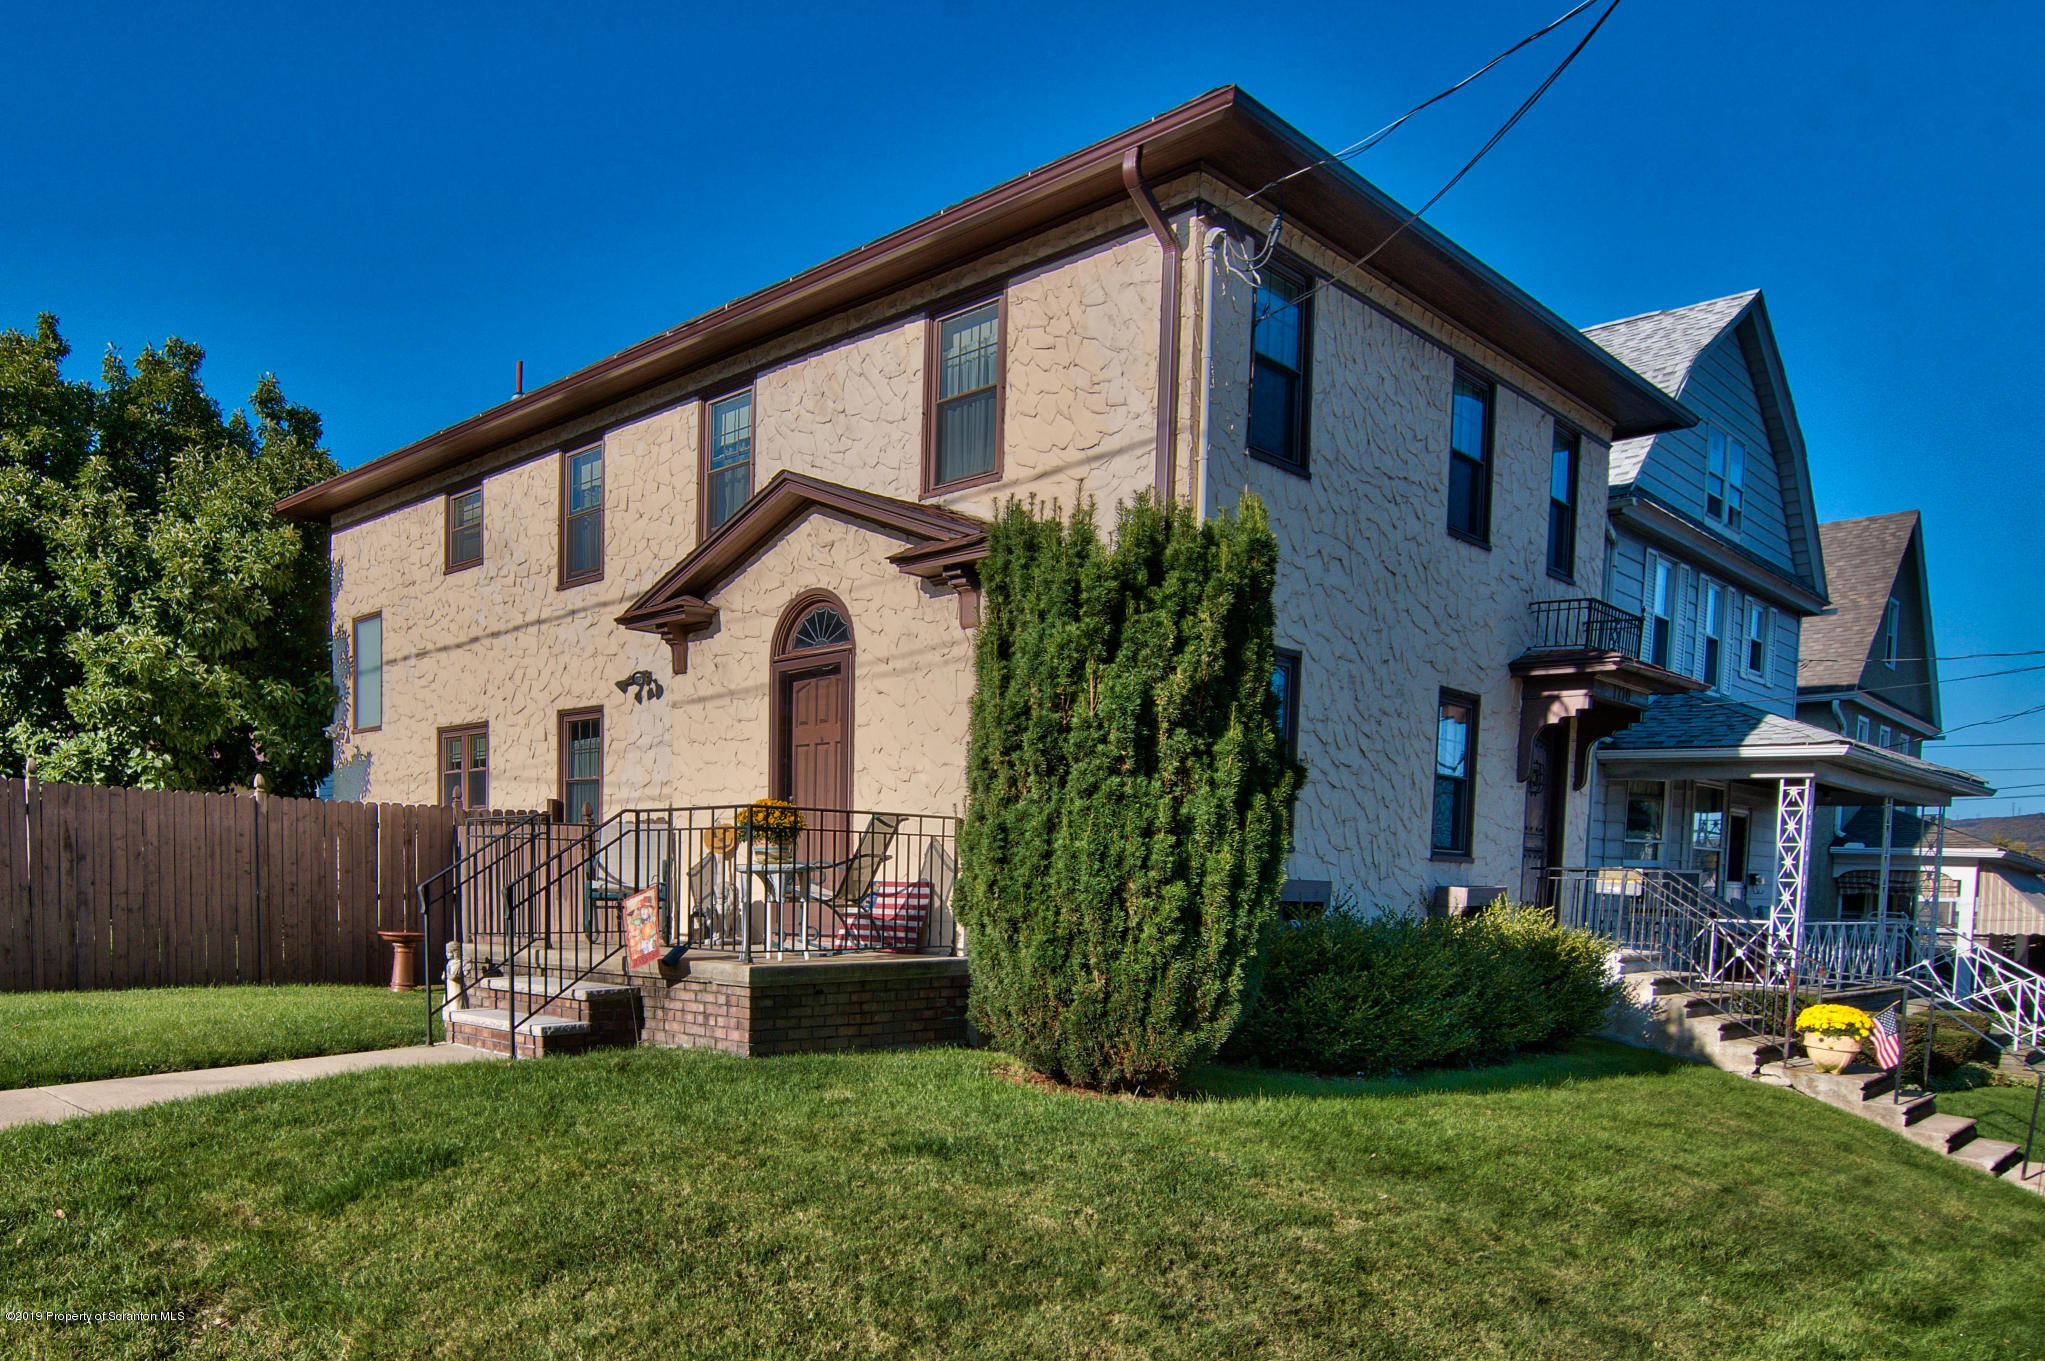 1710 Electric St, Dunmore, Pennsylvania 18509, 4 Bedrooms Bedrooms, 9 Rooms Rooms,3 BathroomsBathrooms,Single Family,For Sale,Electric,19-4908